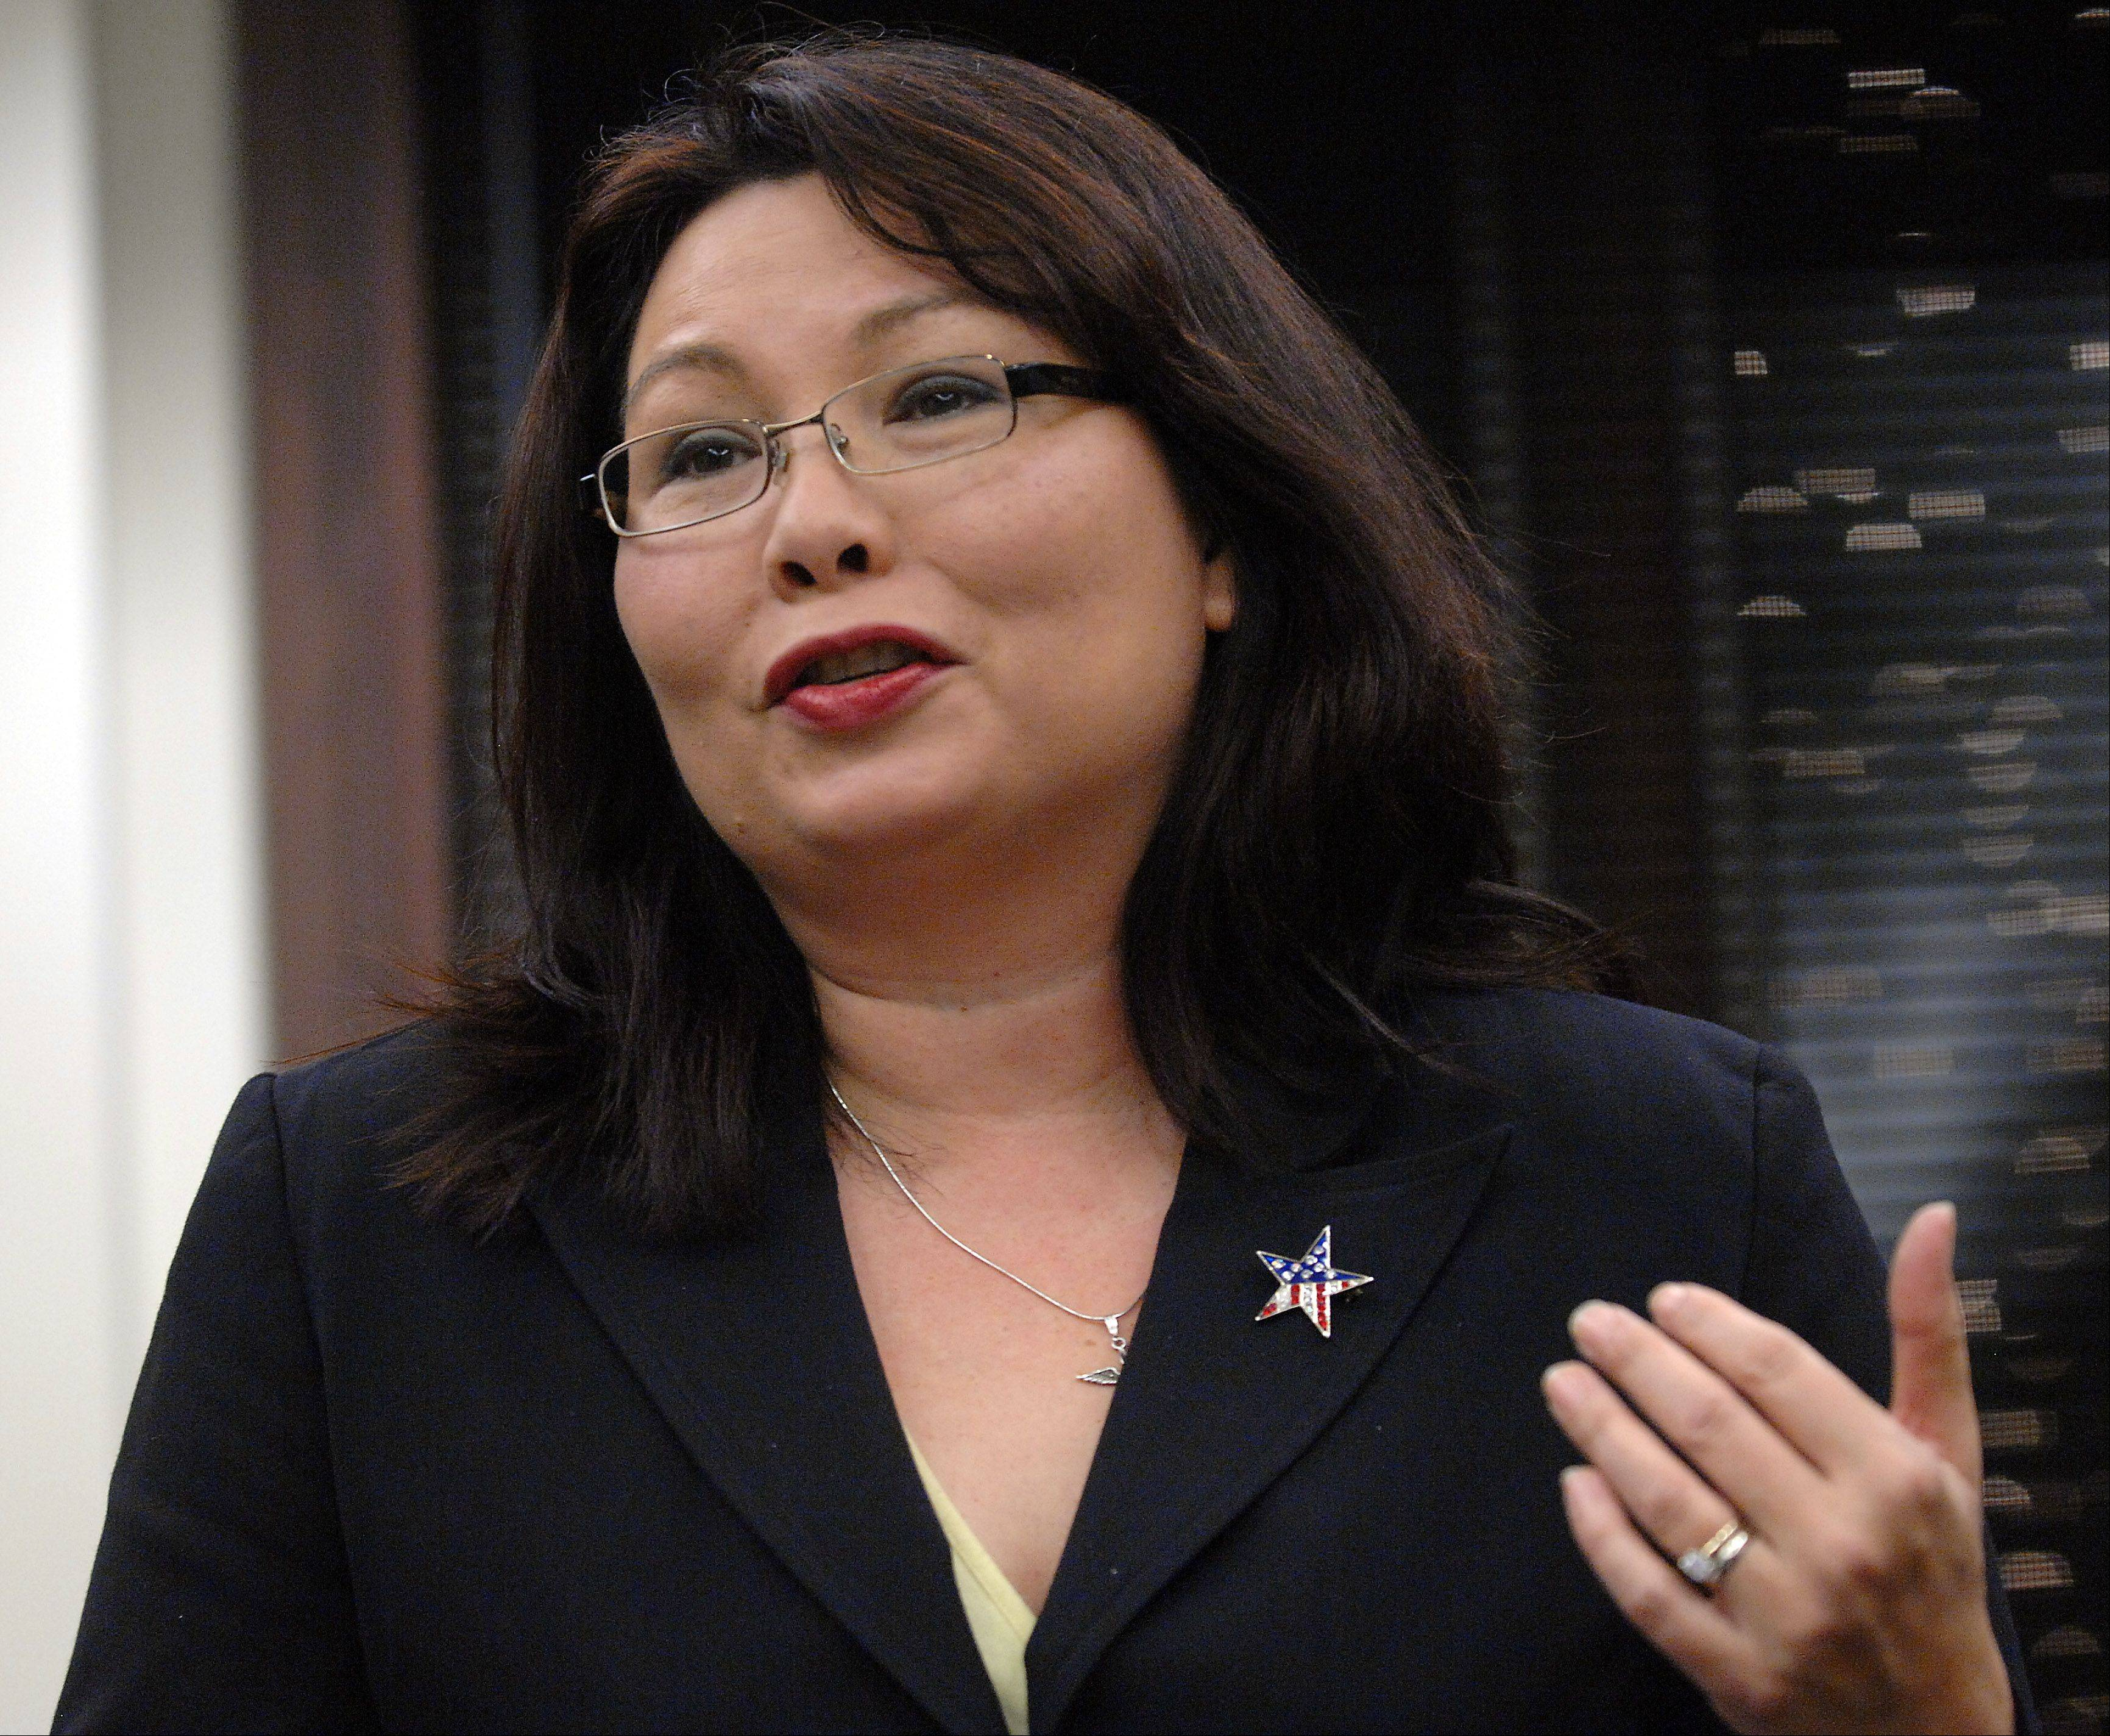 8th Congressional District Democratic candidate Tammy Duckworth speaks at the question-and-answer forum in Arlington Heights Wednesday night.